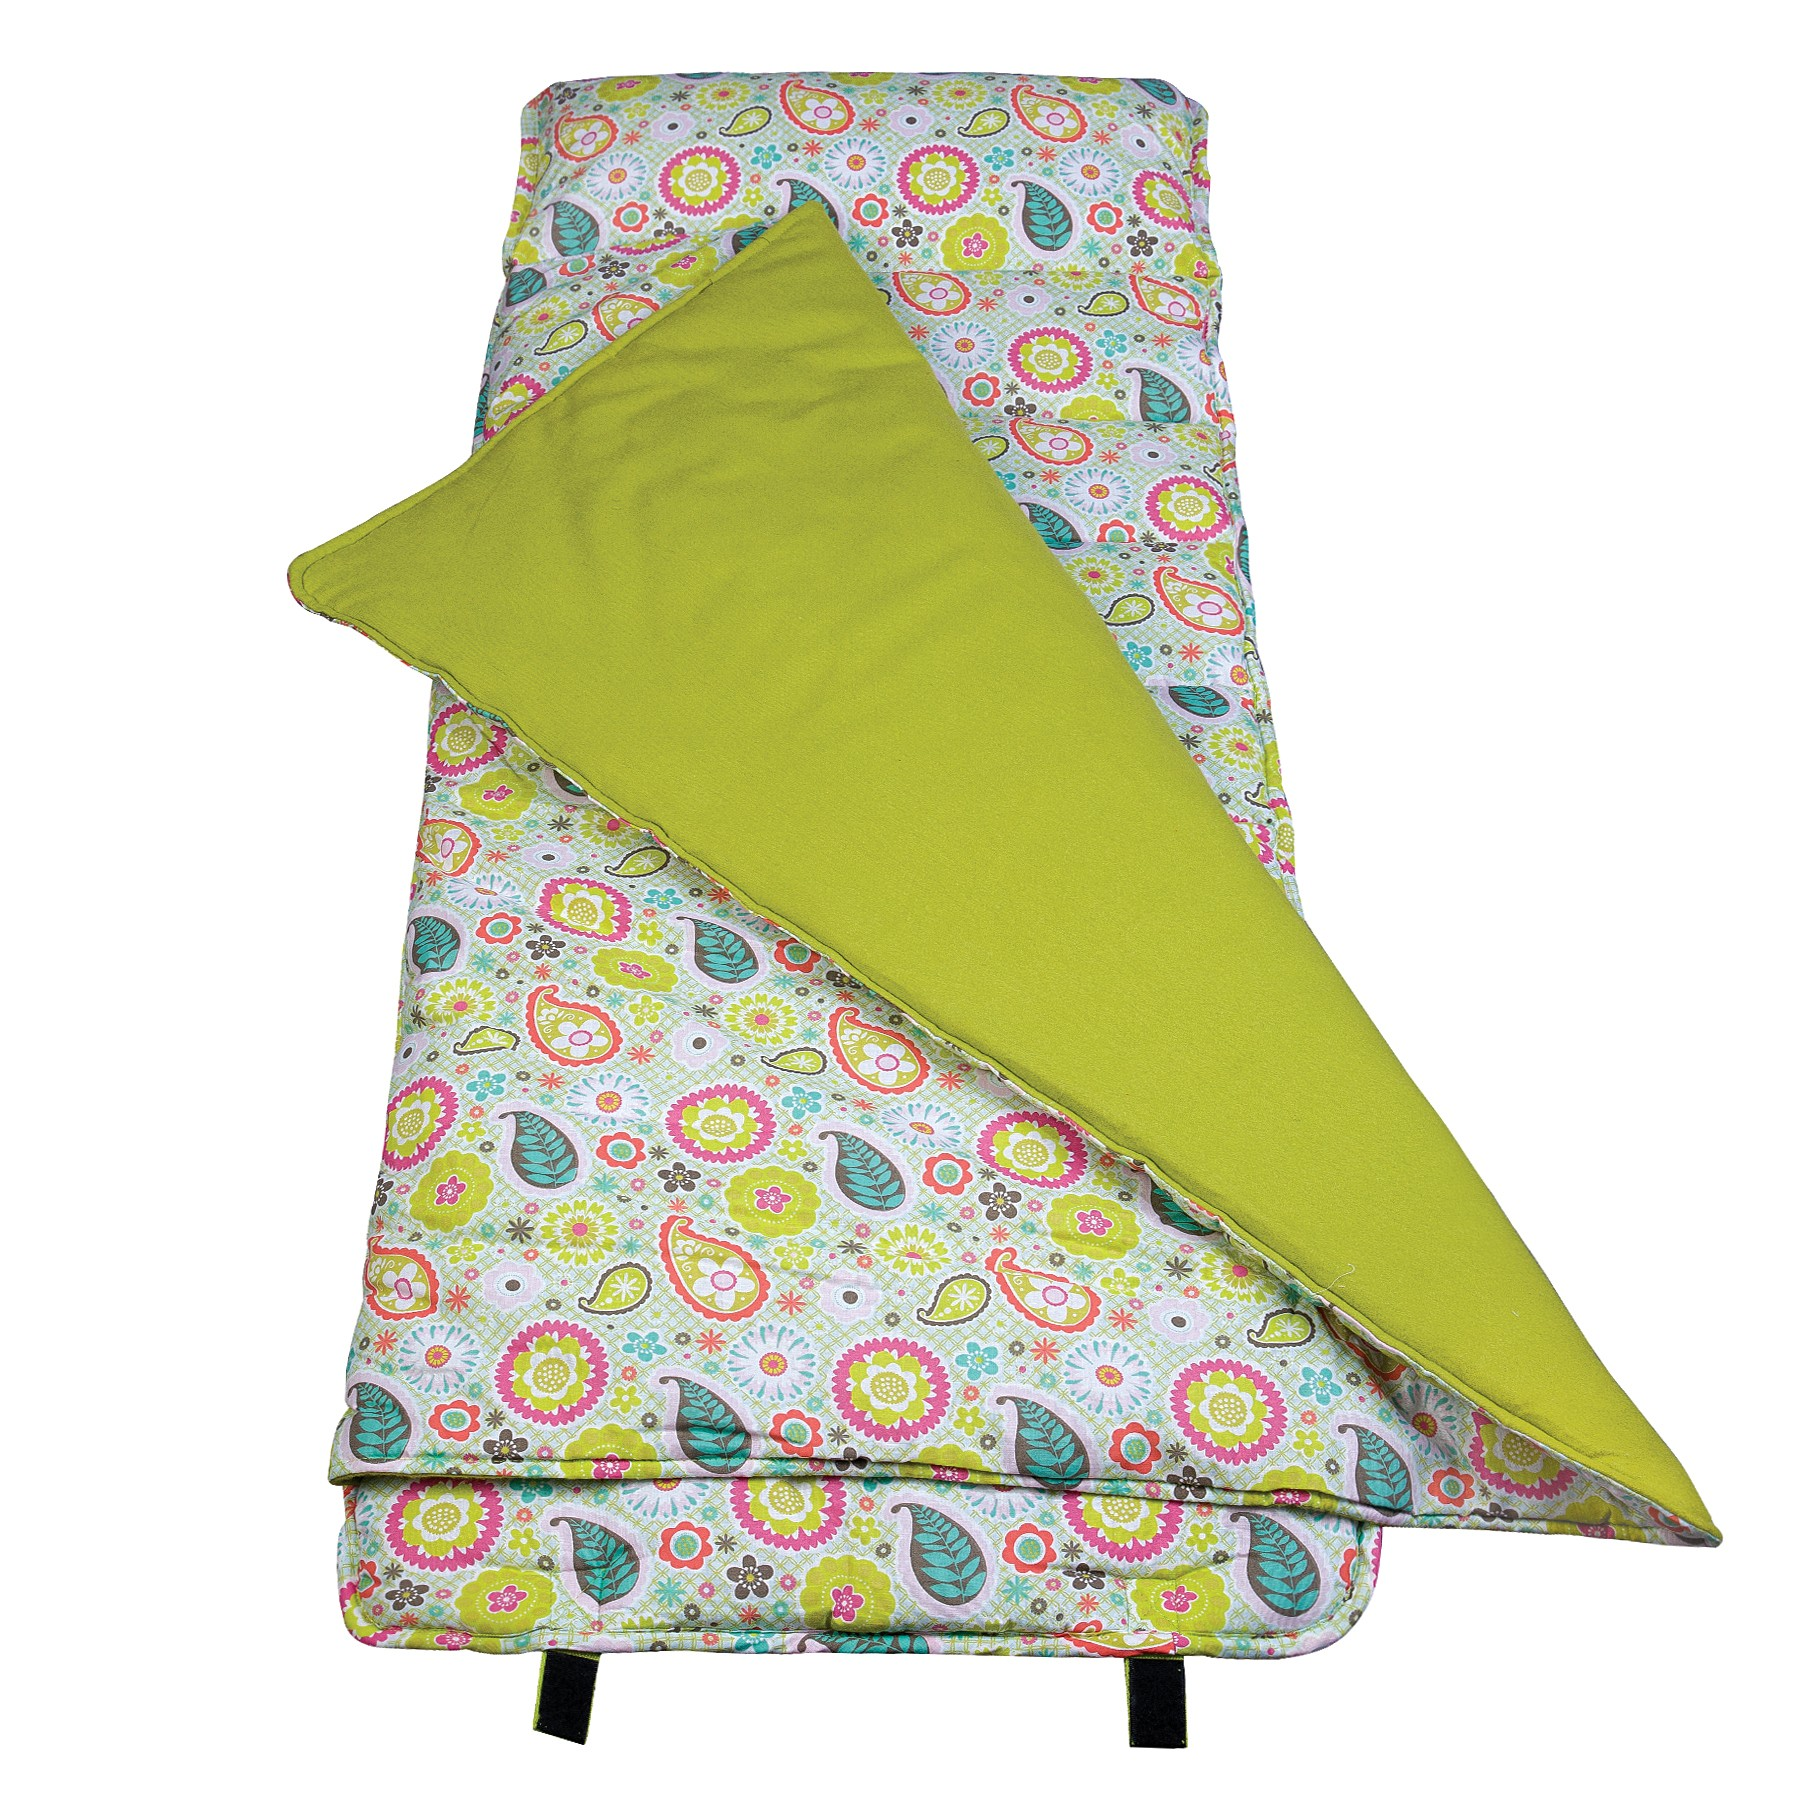 Spring Bloom Original Nap Mats by Olive Kids